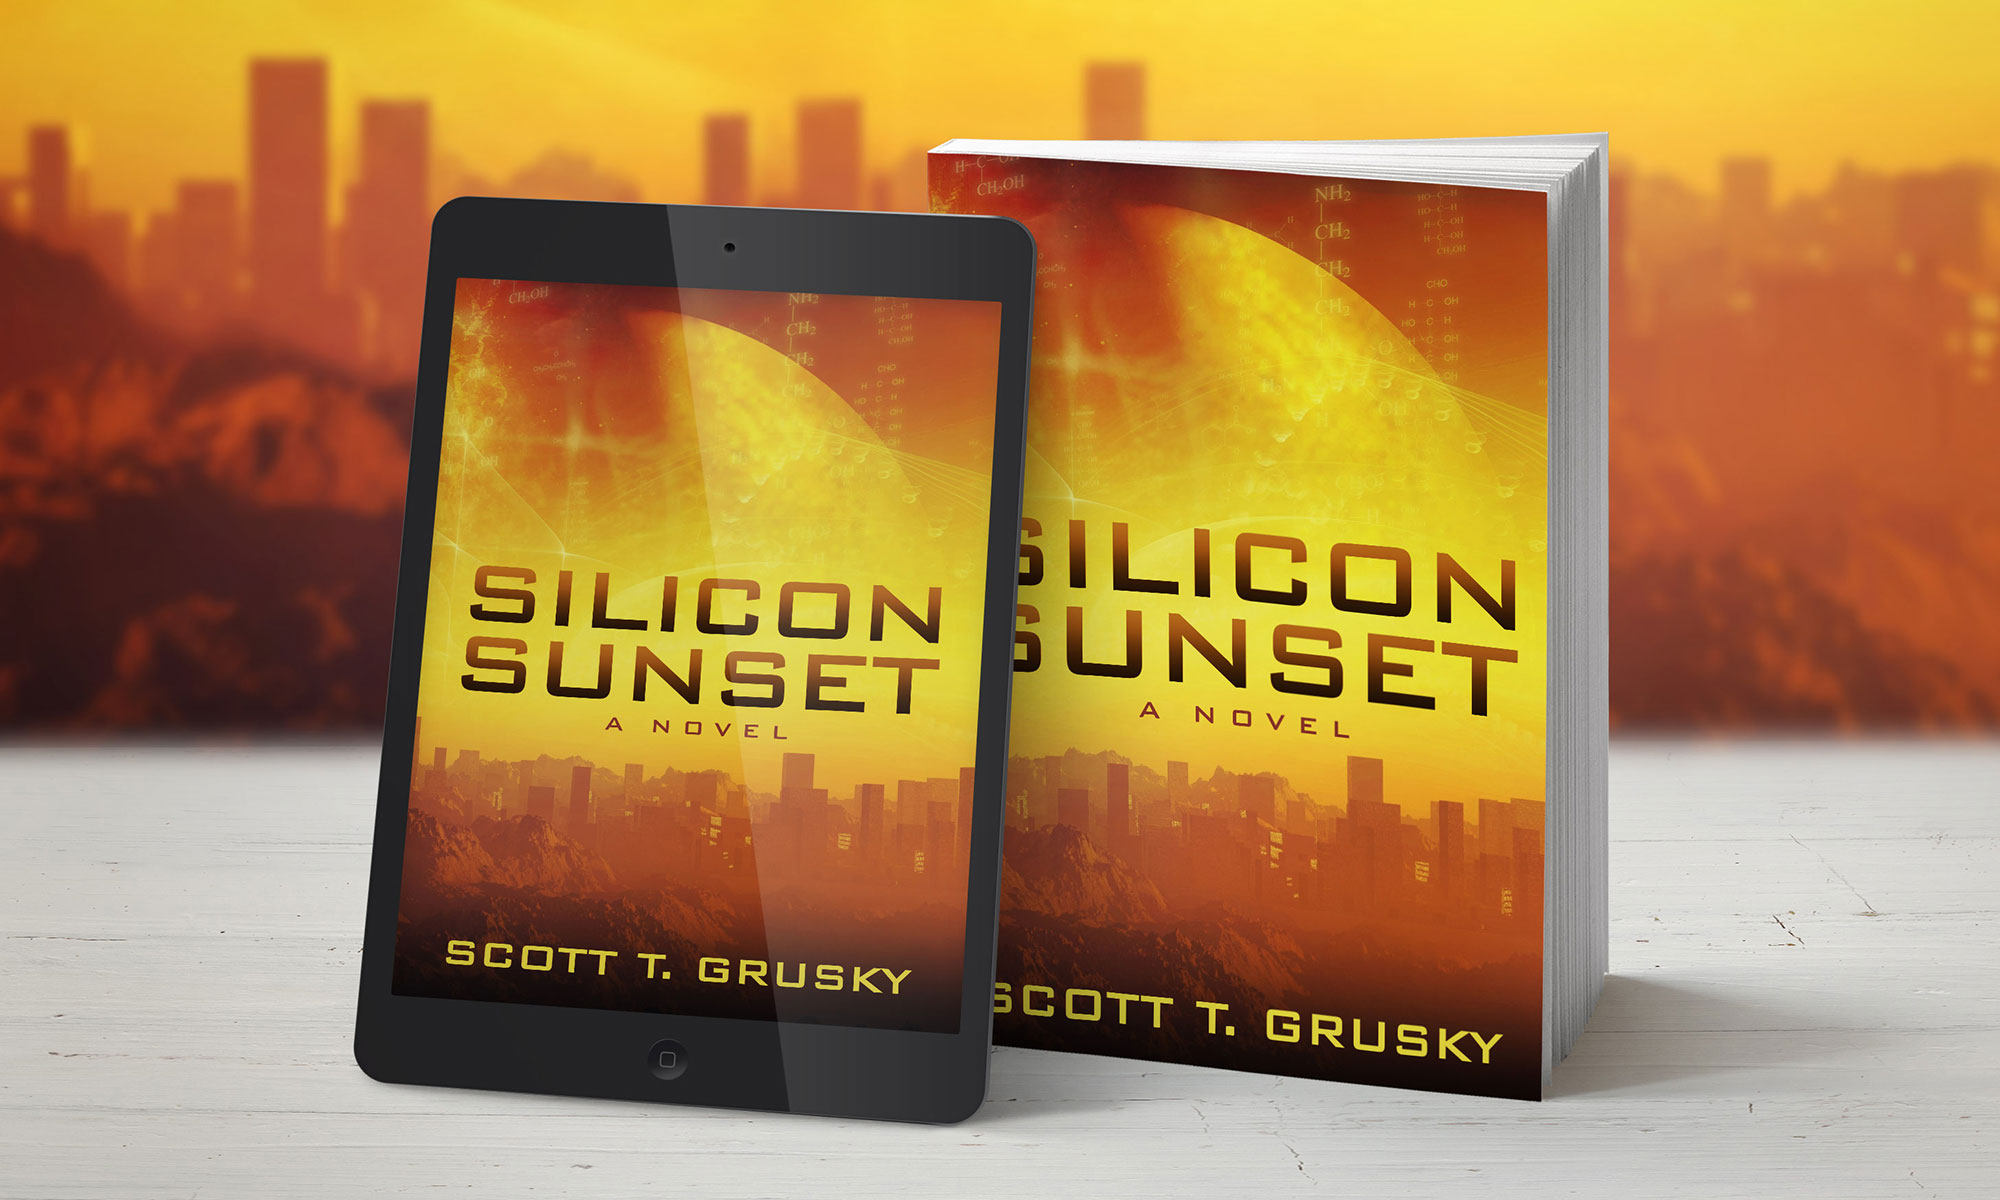 Silicon Sunset